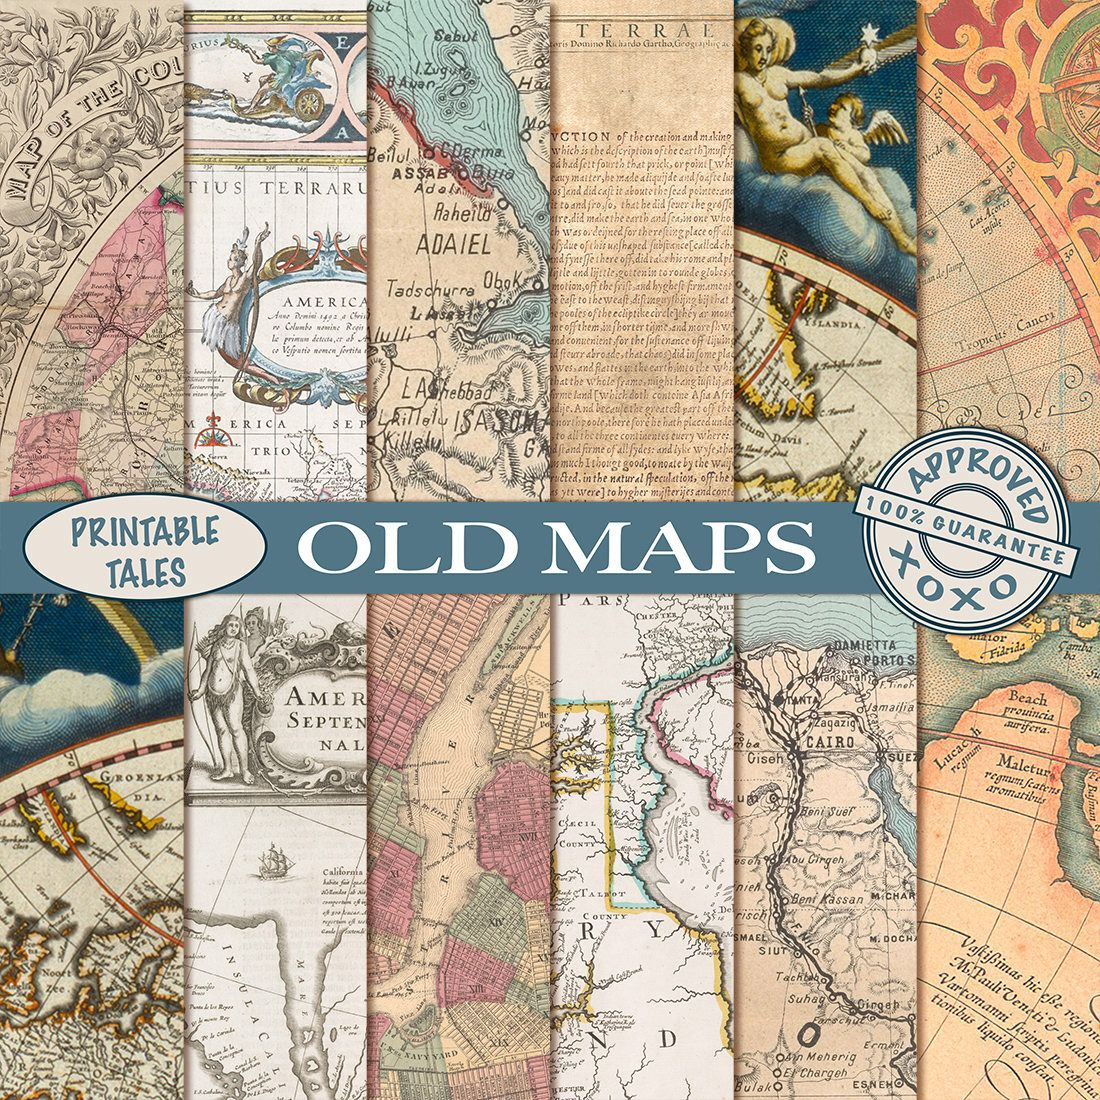 Pin by printabletales on etsy pinterest map america vintage old maps digital papers vintage map download grungy parchment paper old world map nautical antique historical map america europe egypt gumiabroncs Gallery